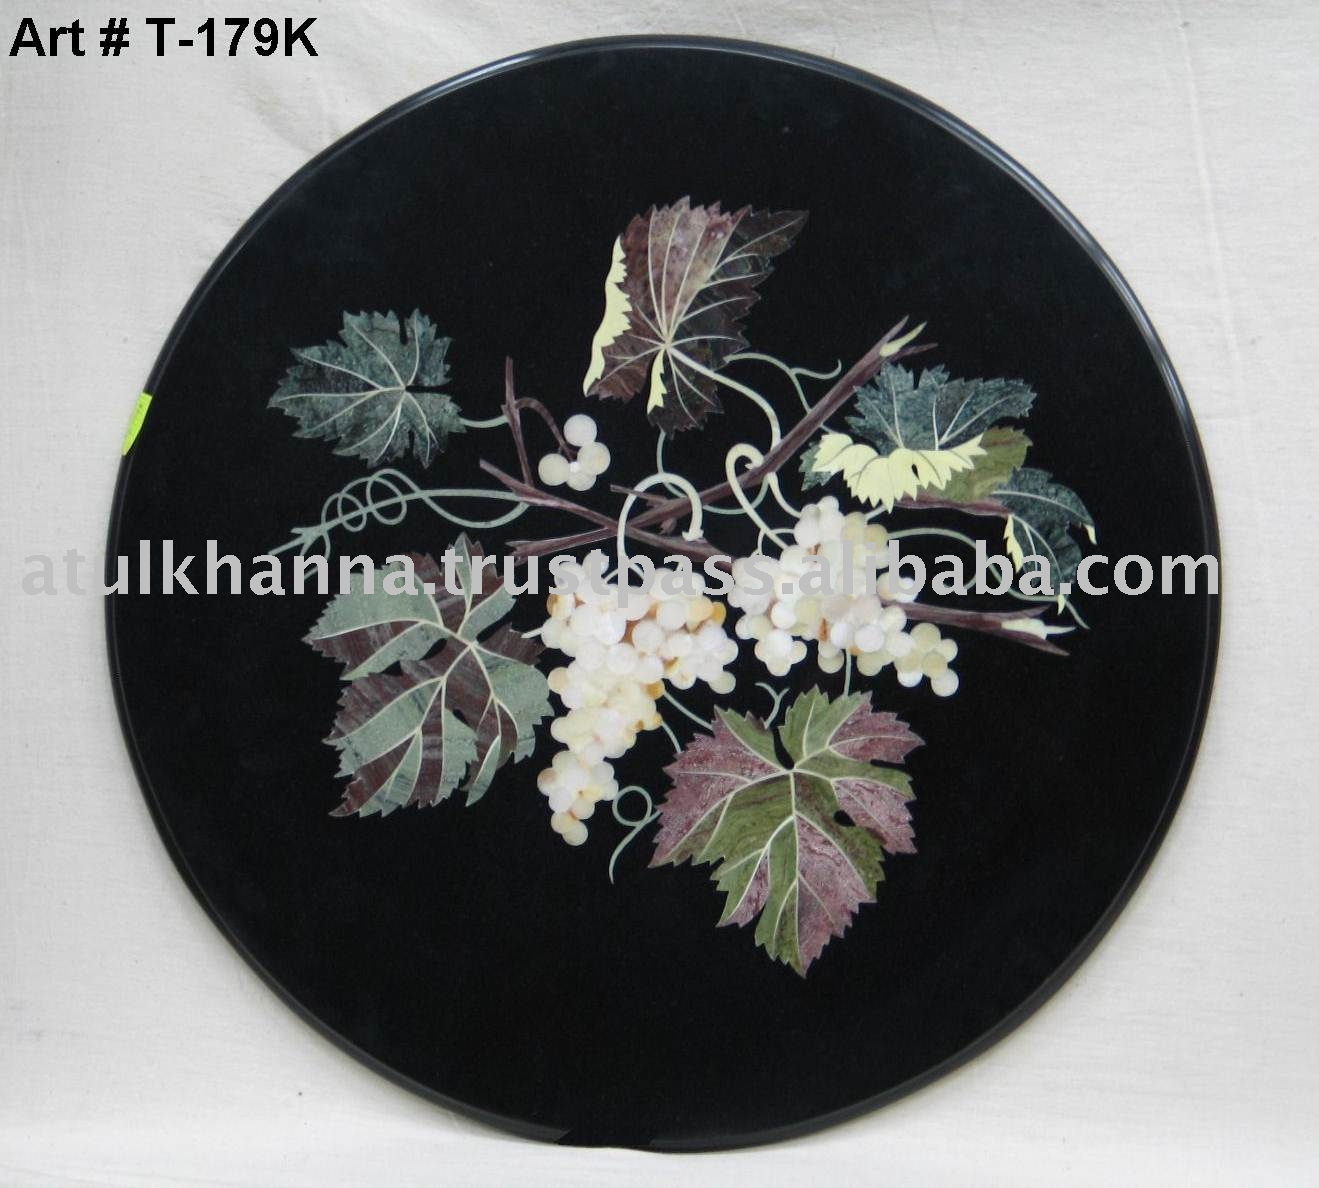 Black Marble Inlay Pietra Dura Coffee Table Top Buy  : Black Marble Inlay Pietra Dura Coffee Table from alibaba.com size 1319 x 1188 jpeg 475kB